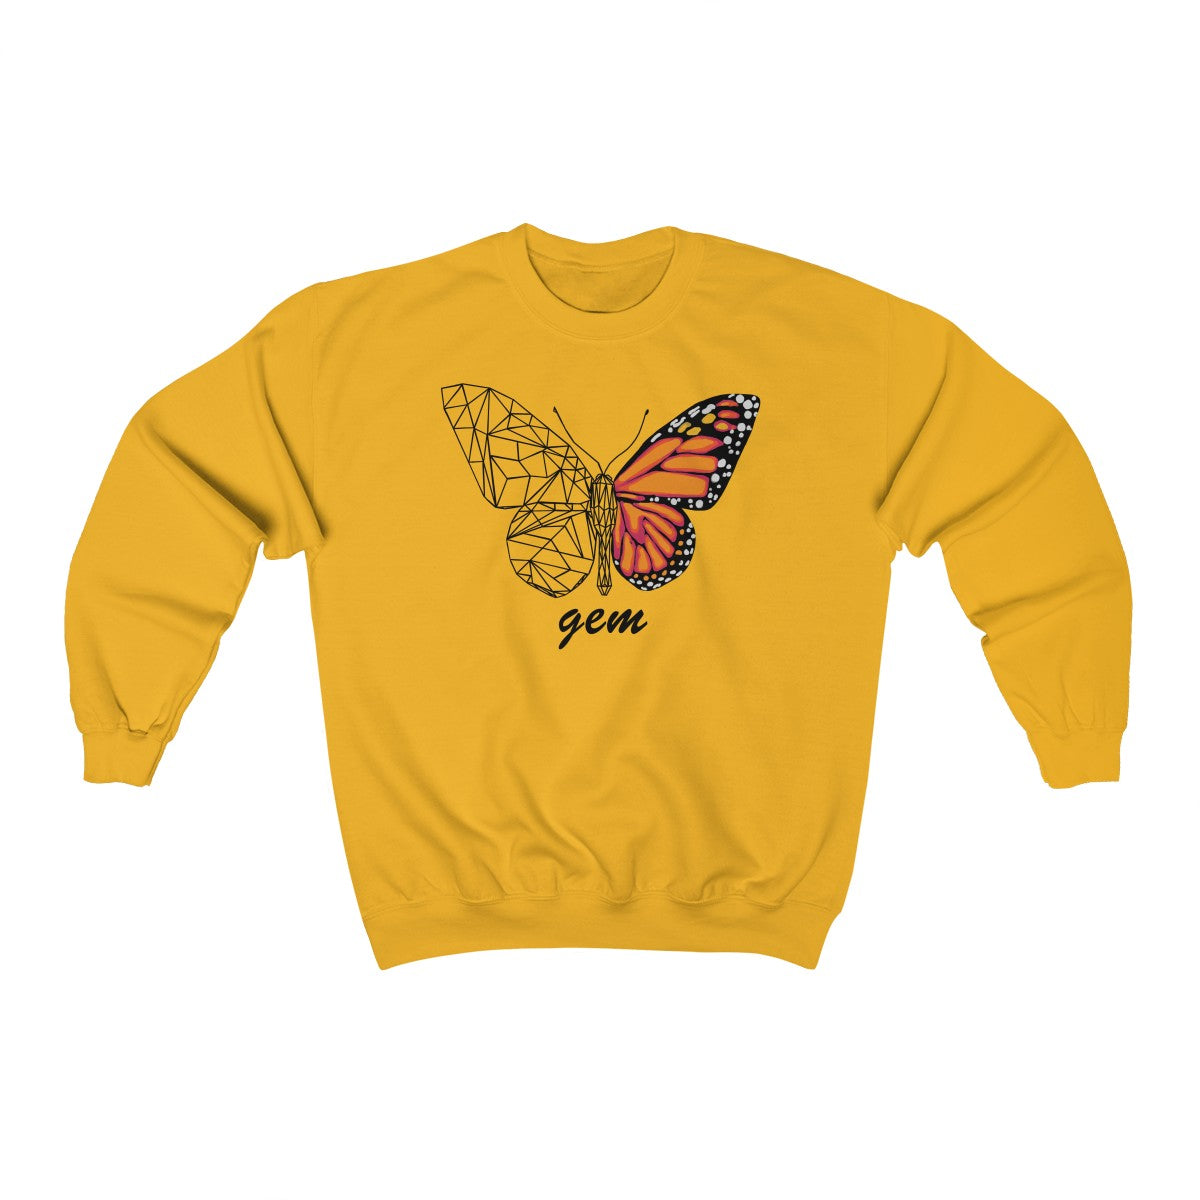 GEM Sweatshirt